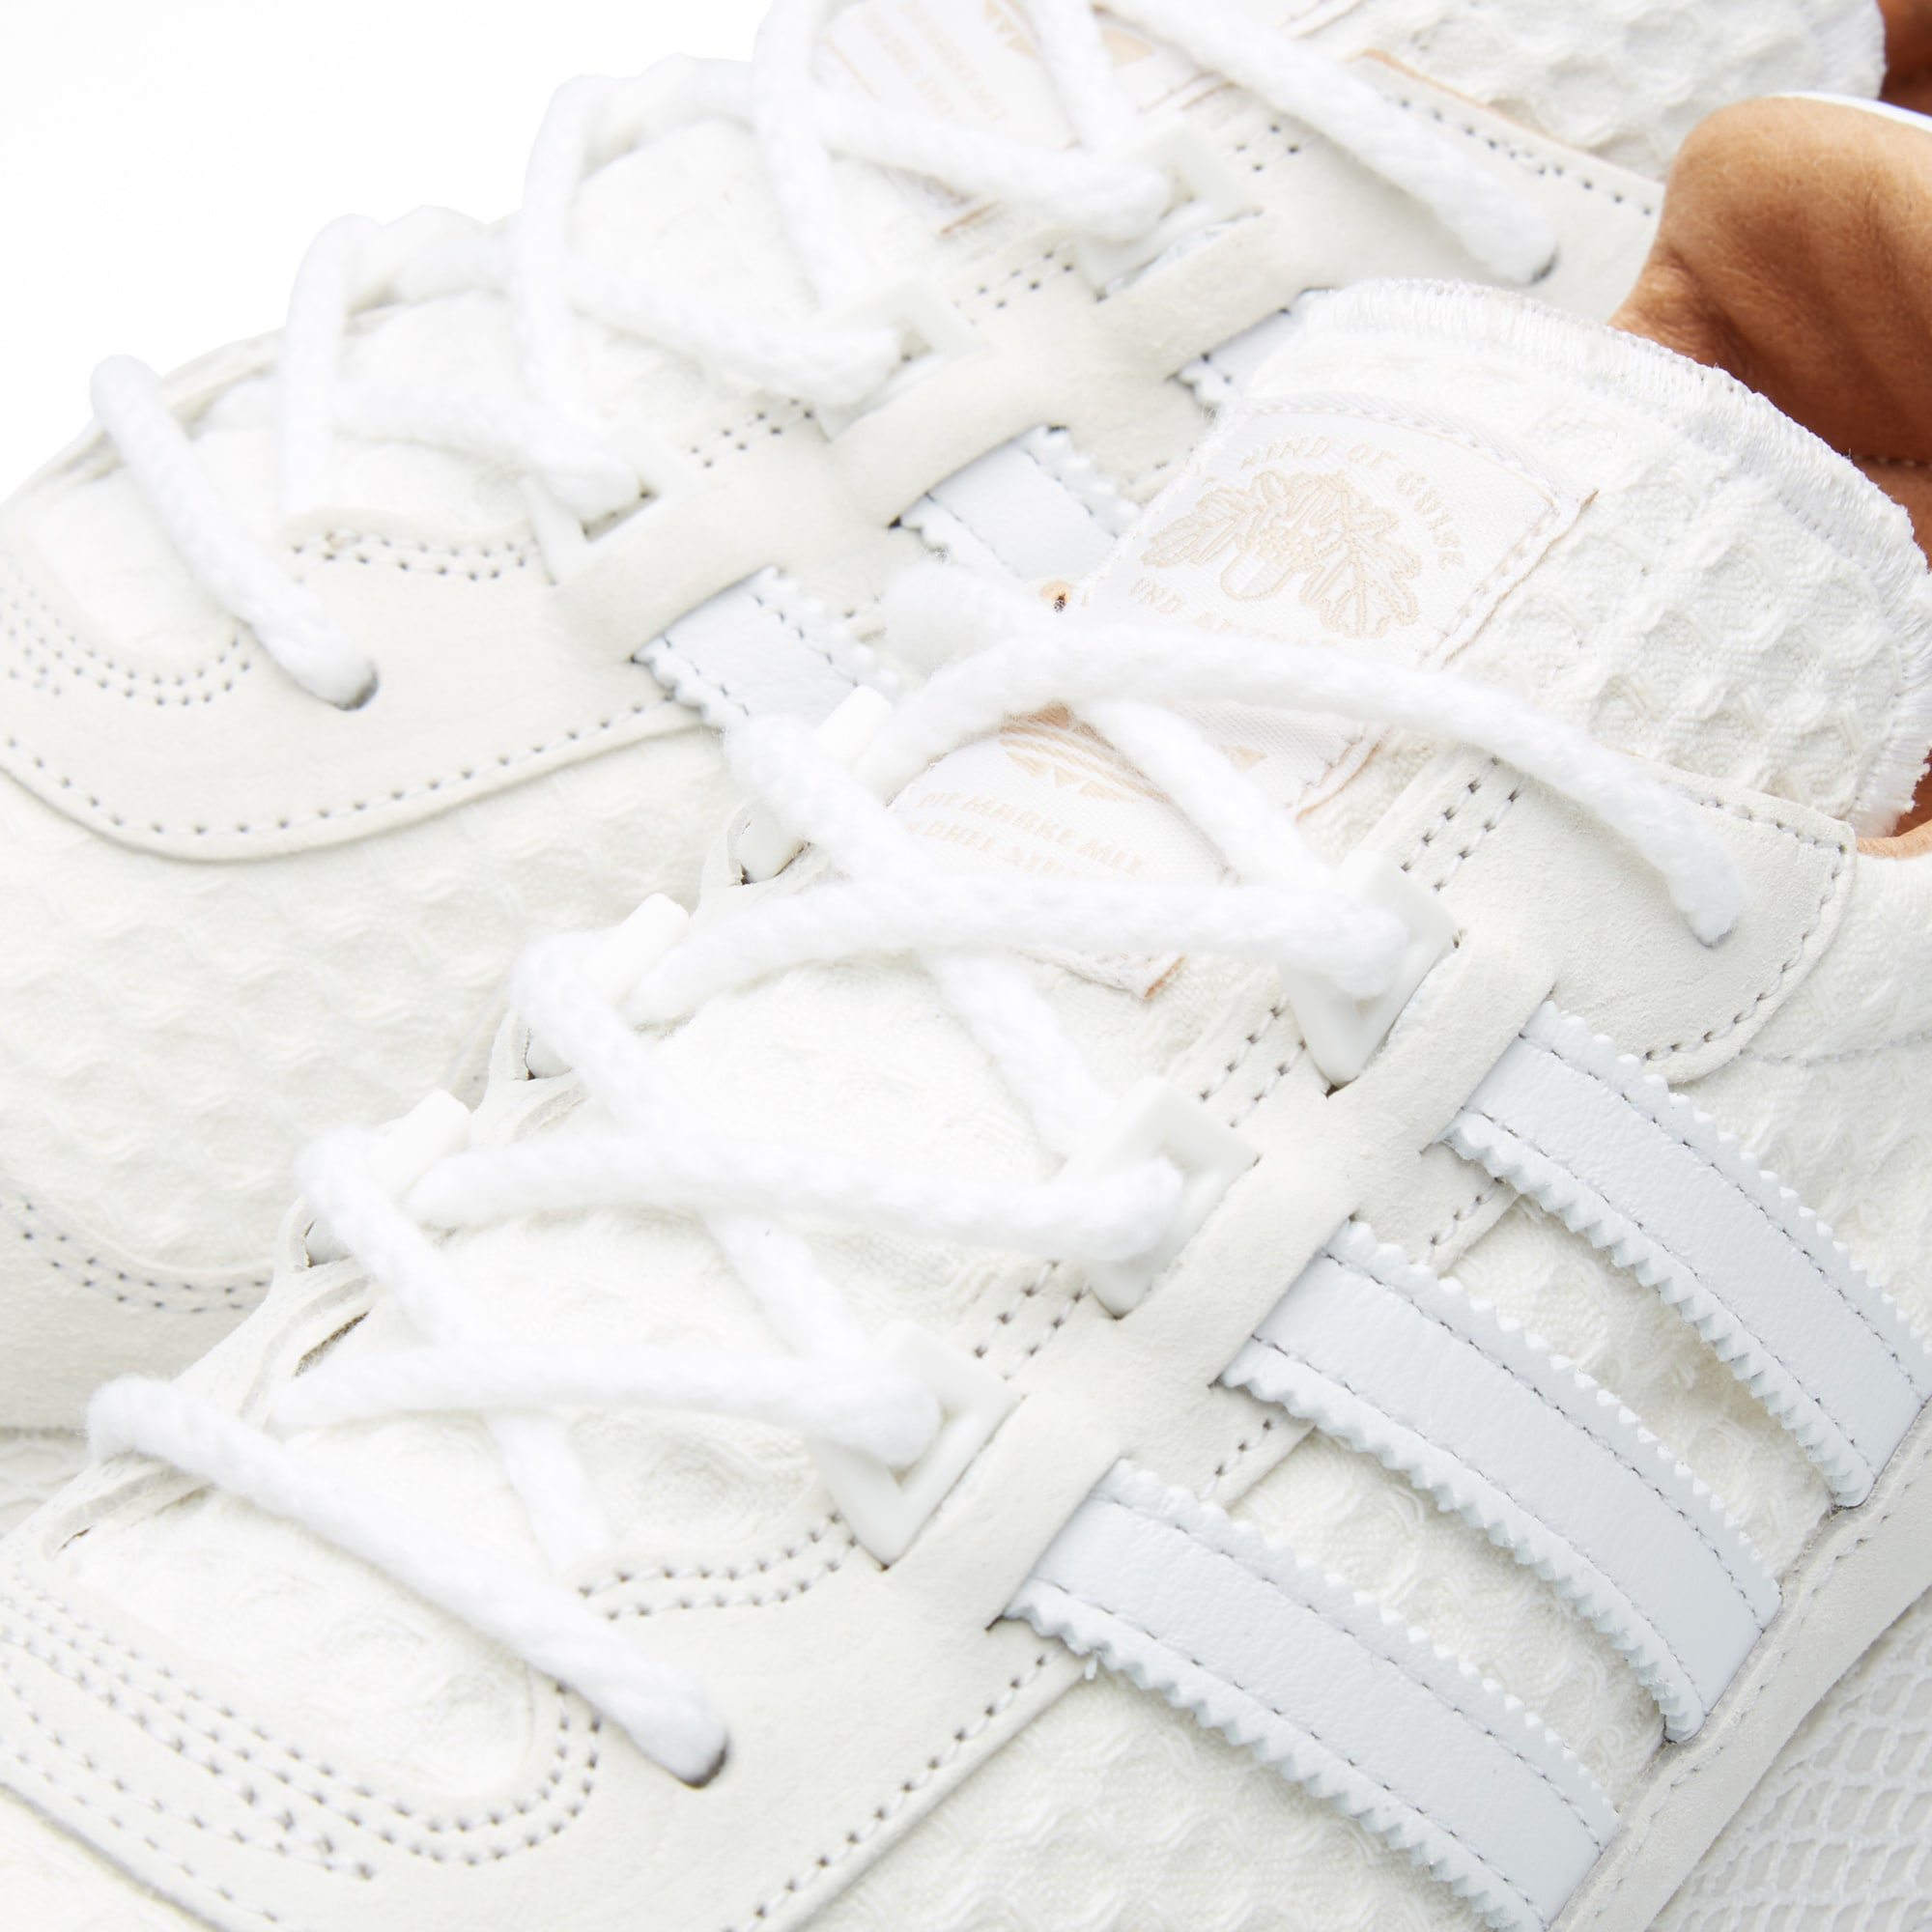 6b0c02badc1 Adidas Consortium x A Kind of Guise New York White | END.